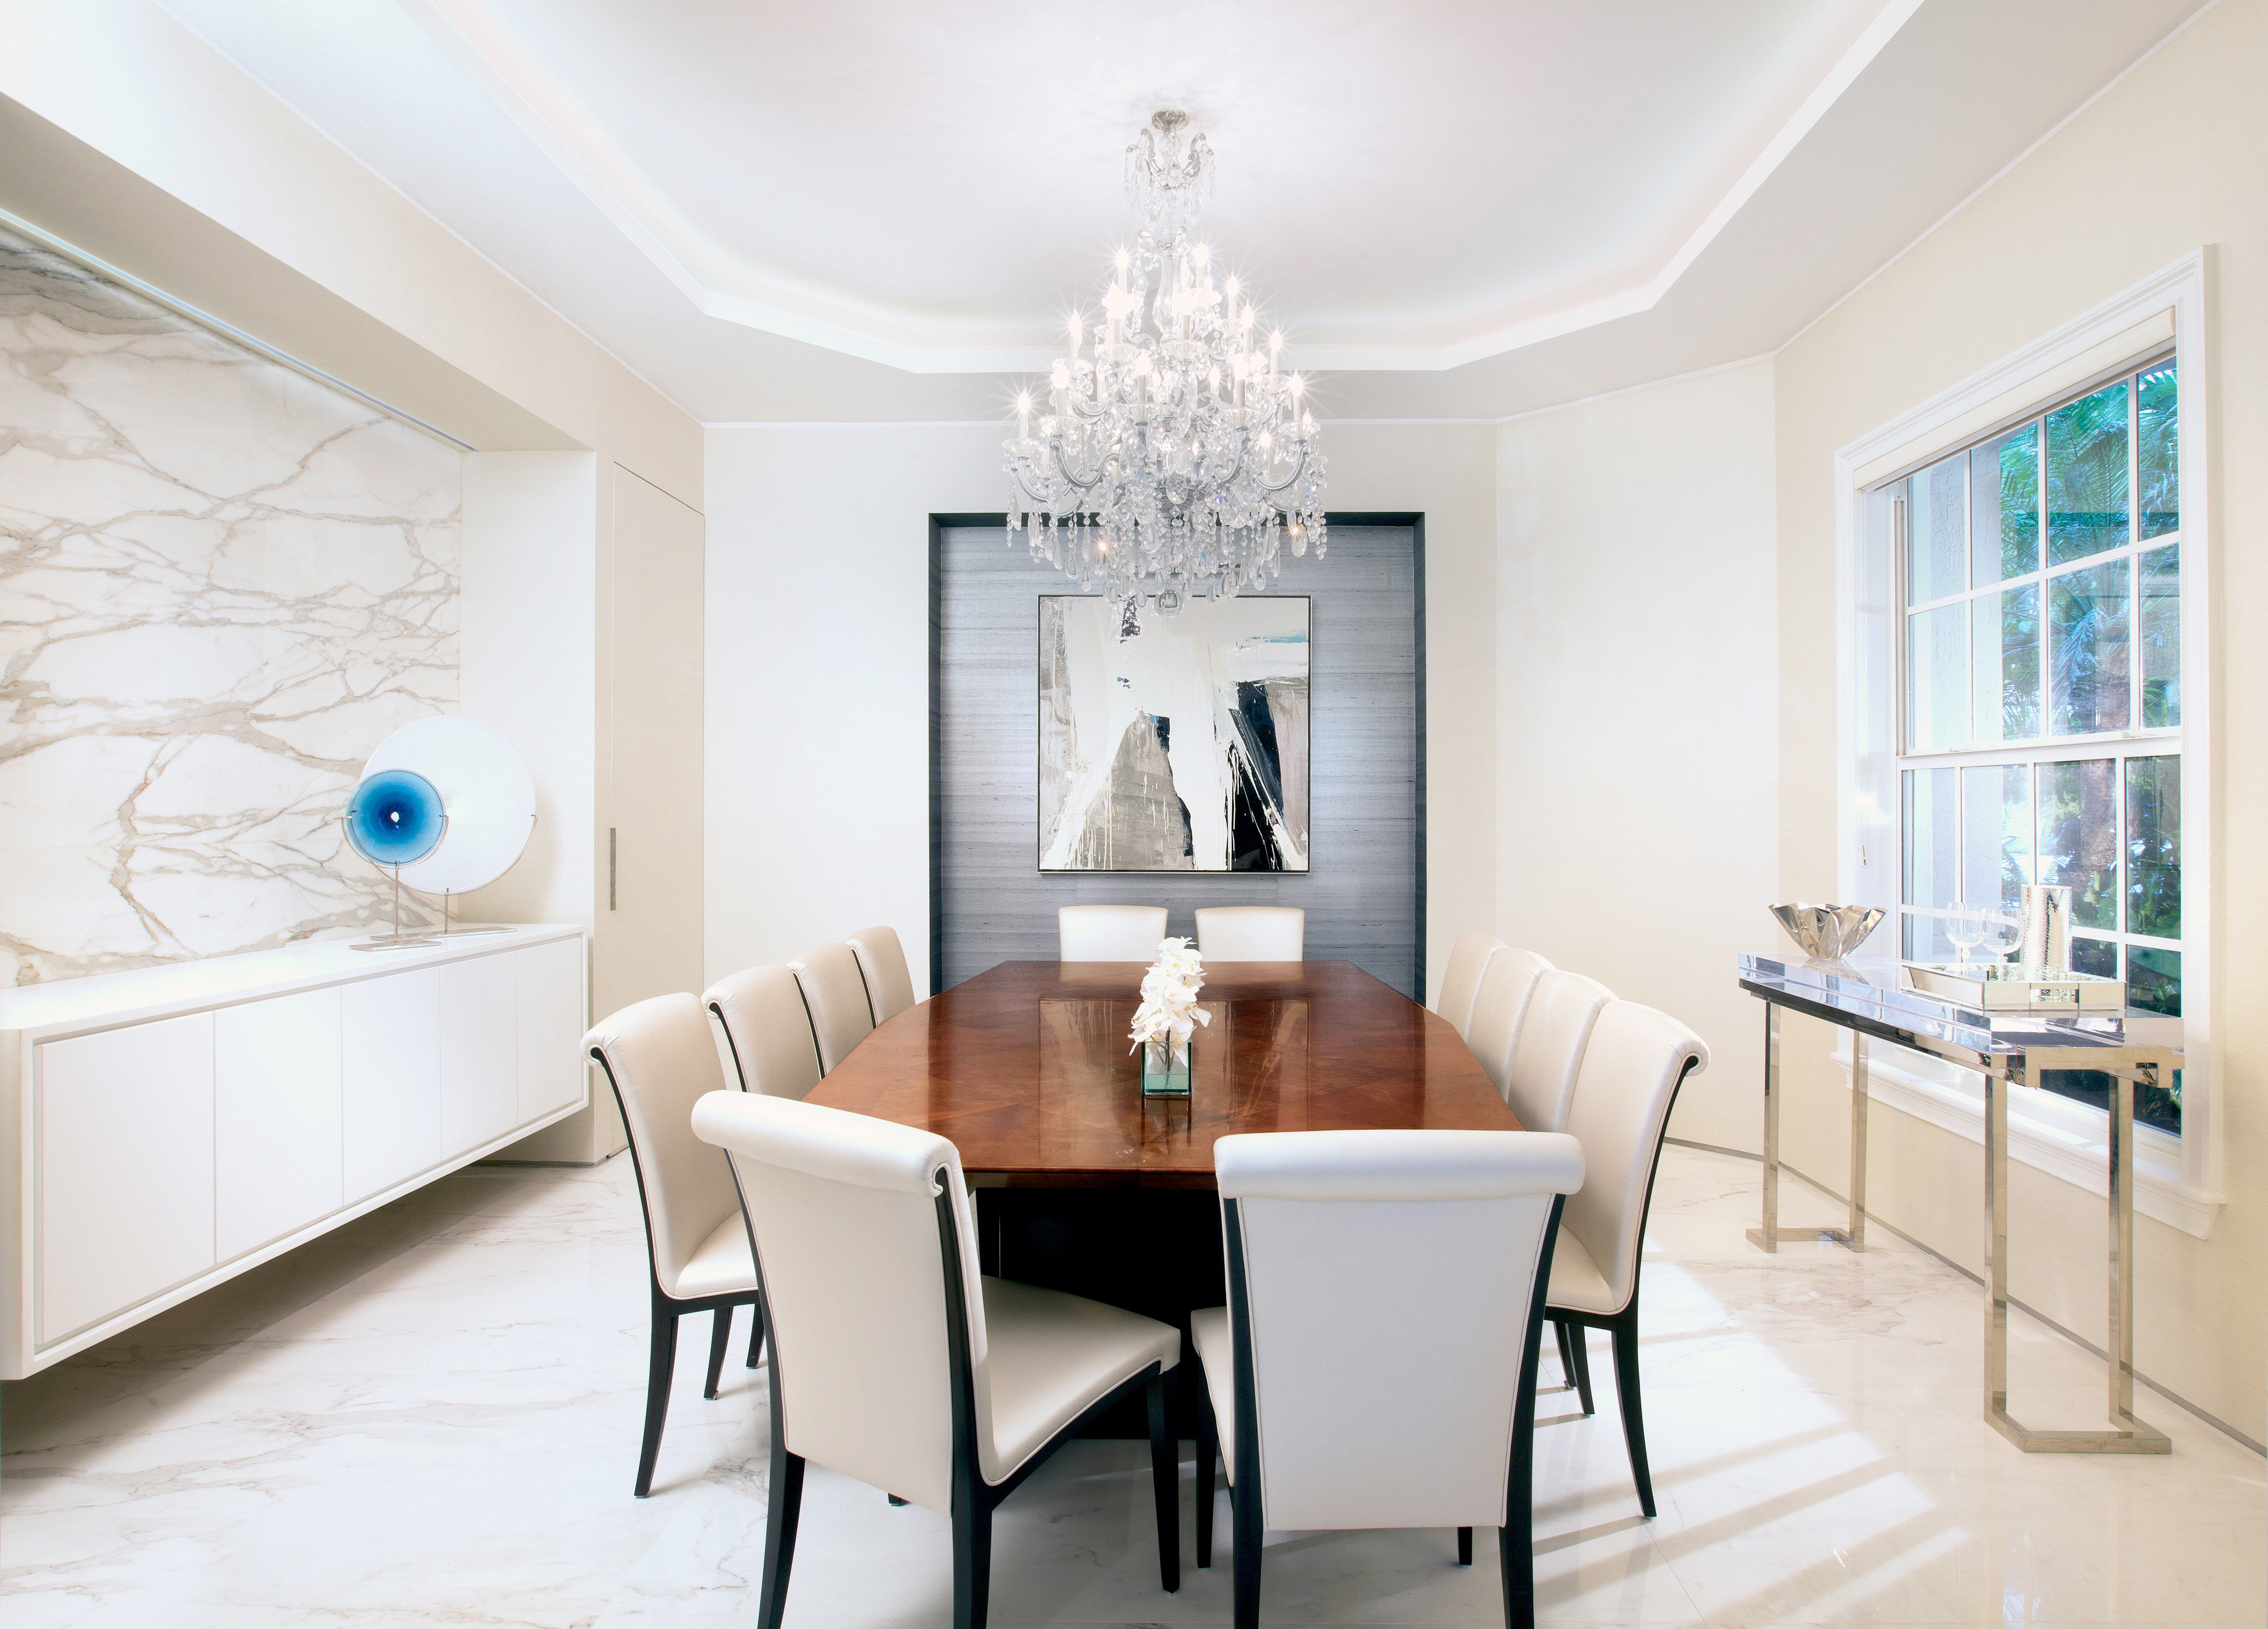 2017 Wonderful Contemporary Dining Room Design (Image 2 of 25)